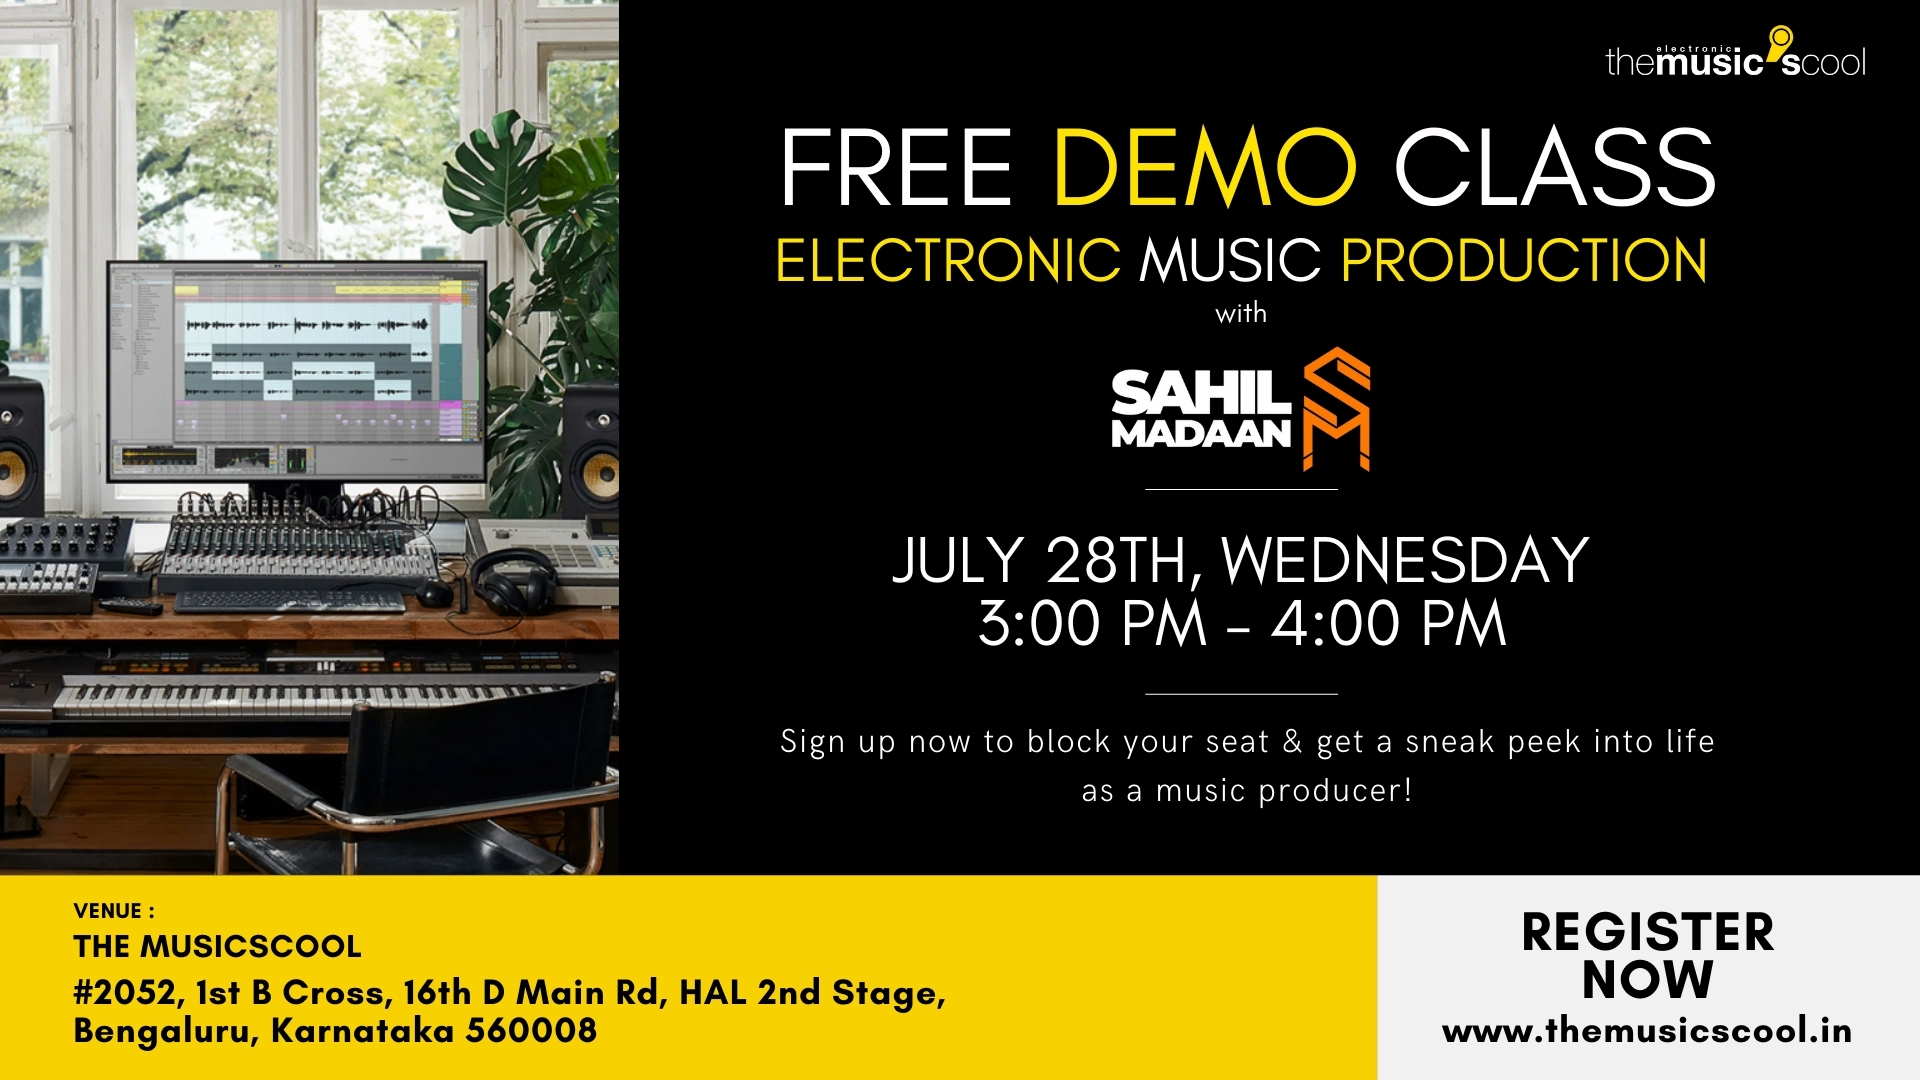 MUSIC PRODUCTION DEMO CLASS